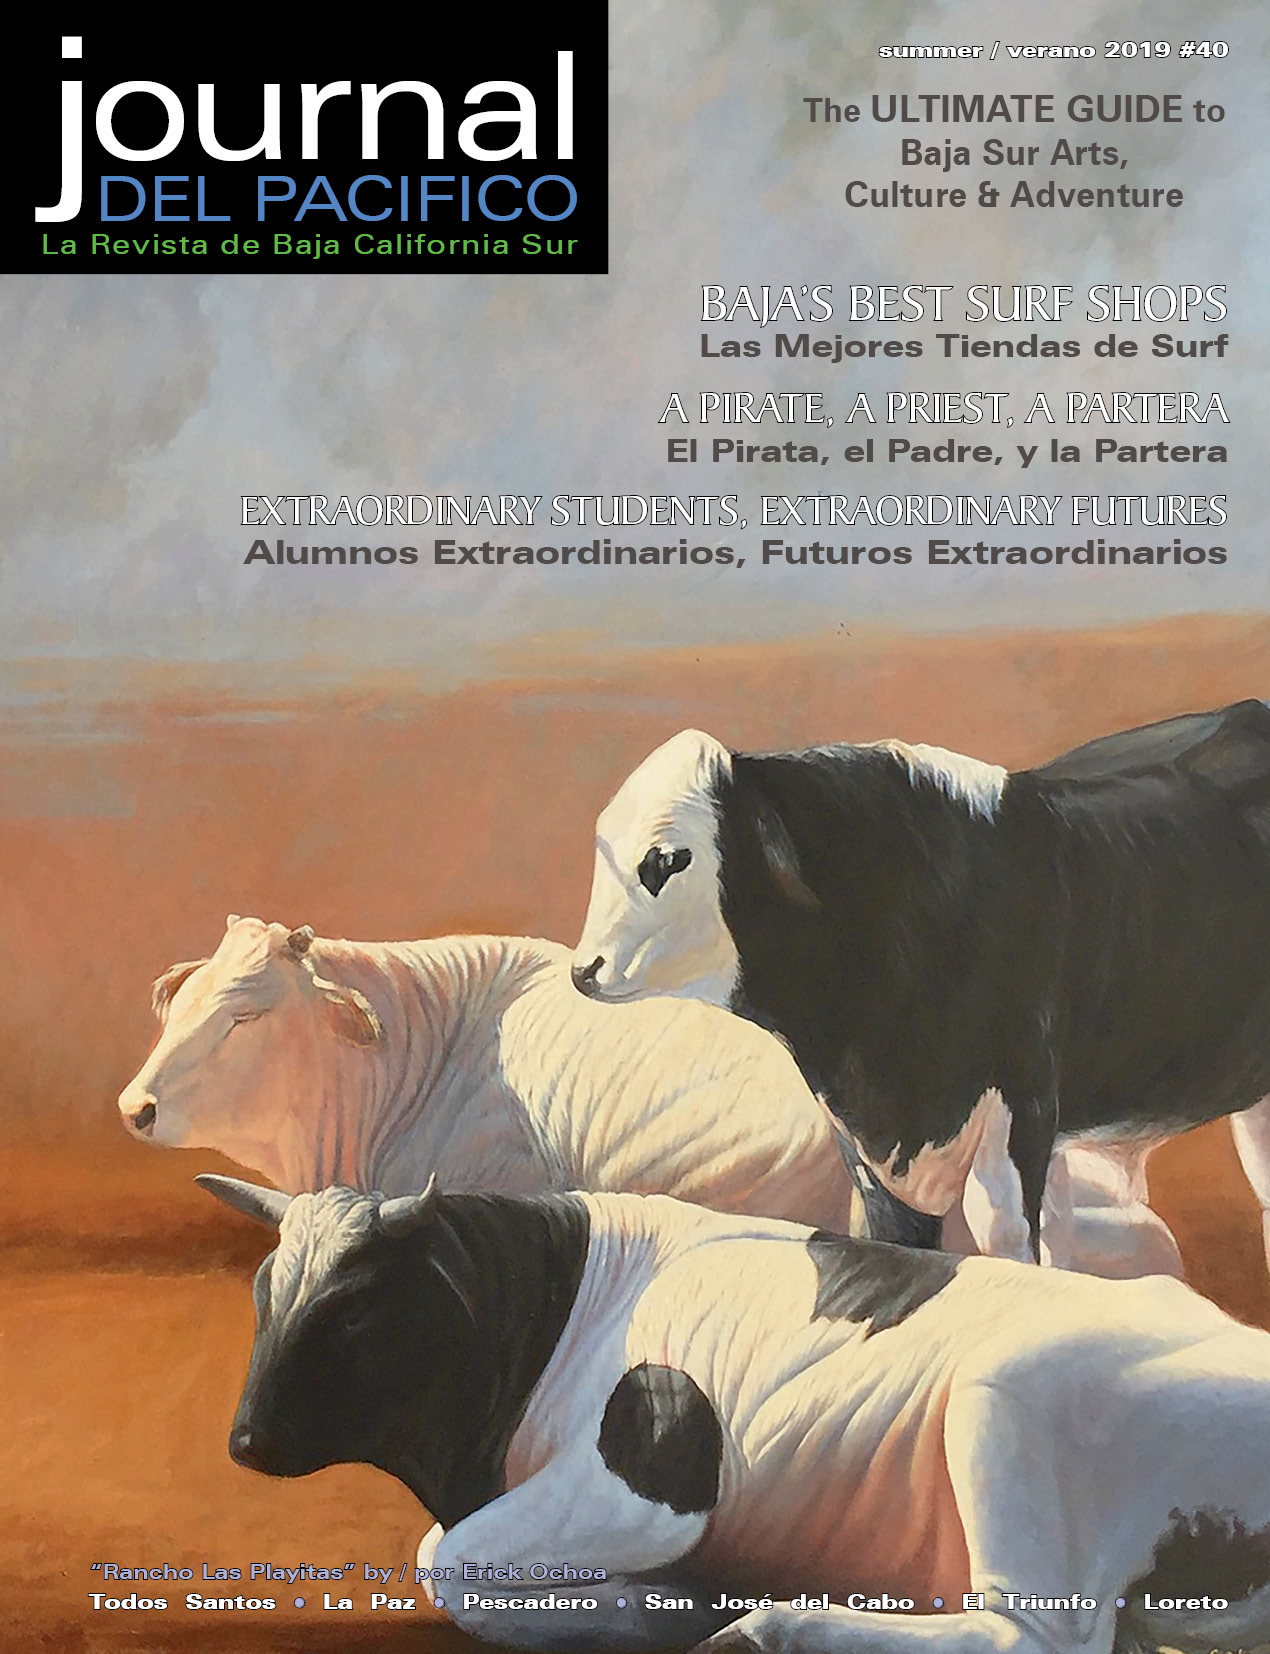 Summer/Verano 2019 Issue of Journal del Pacifico